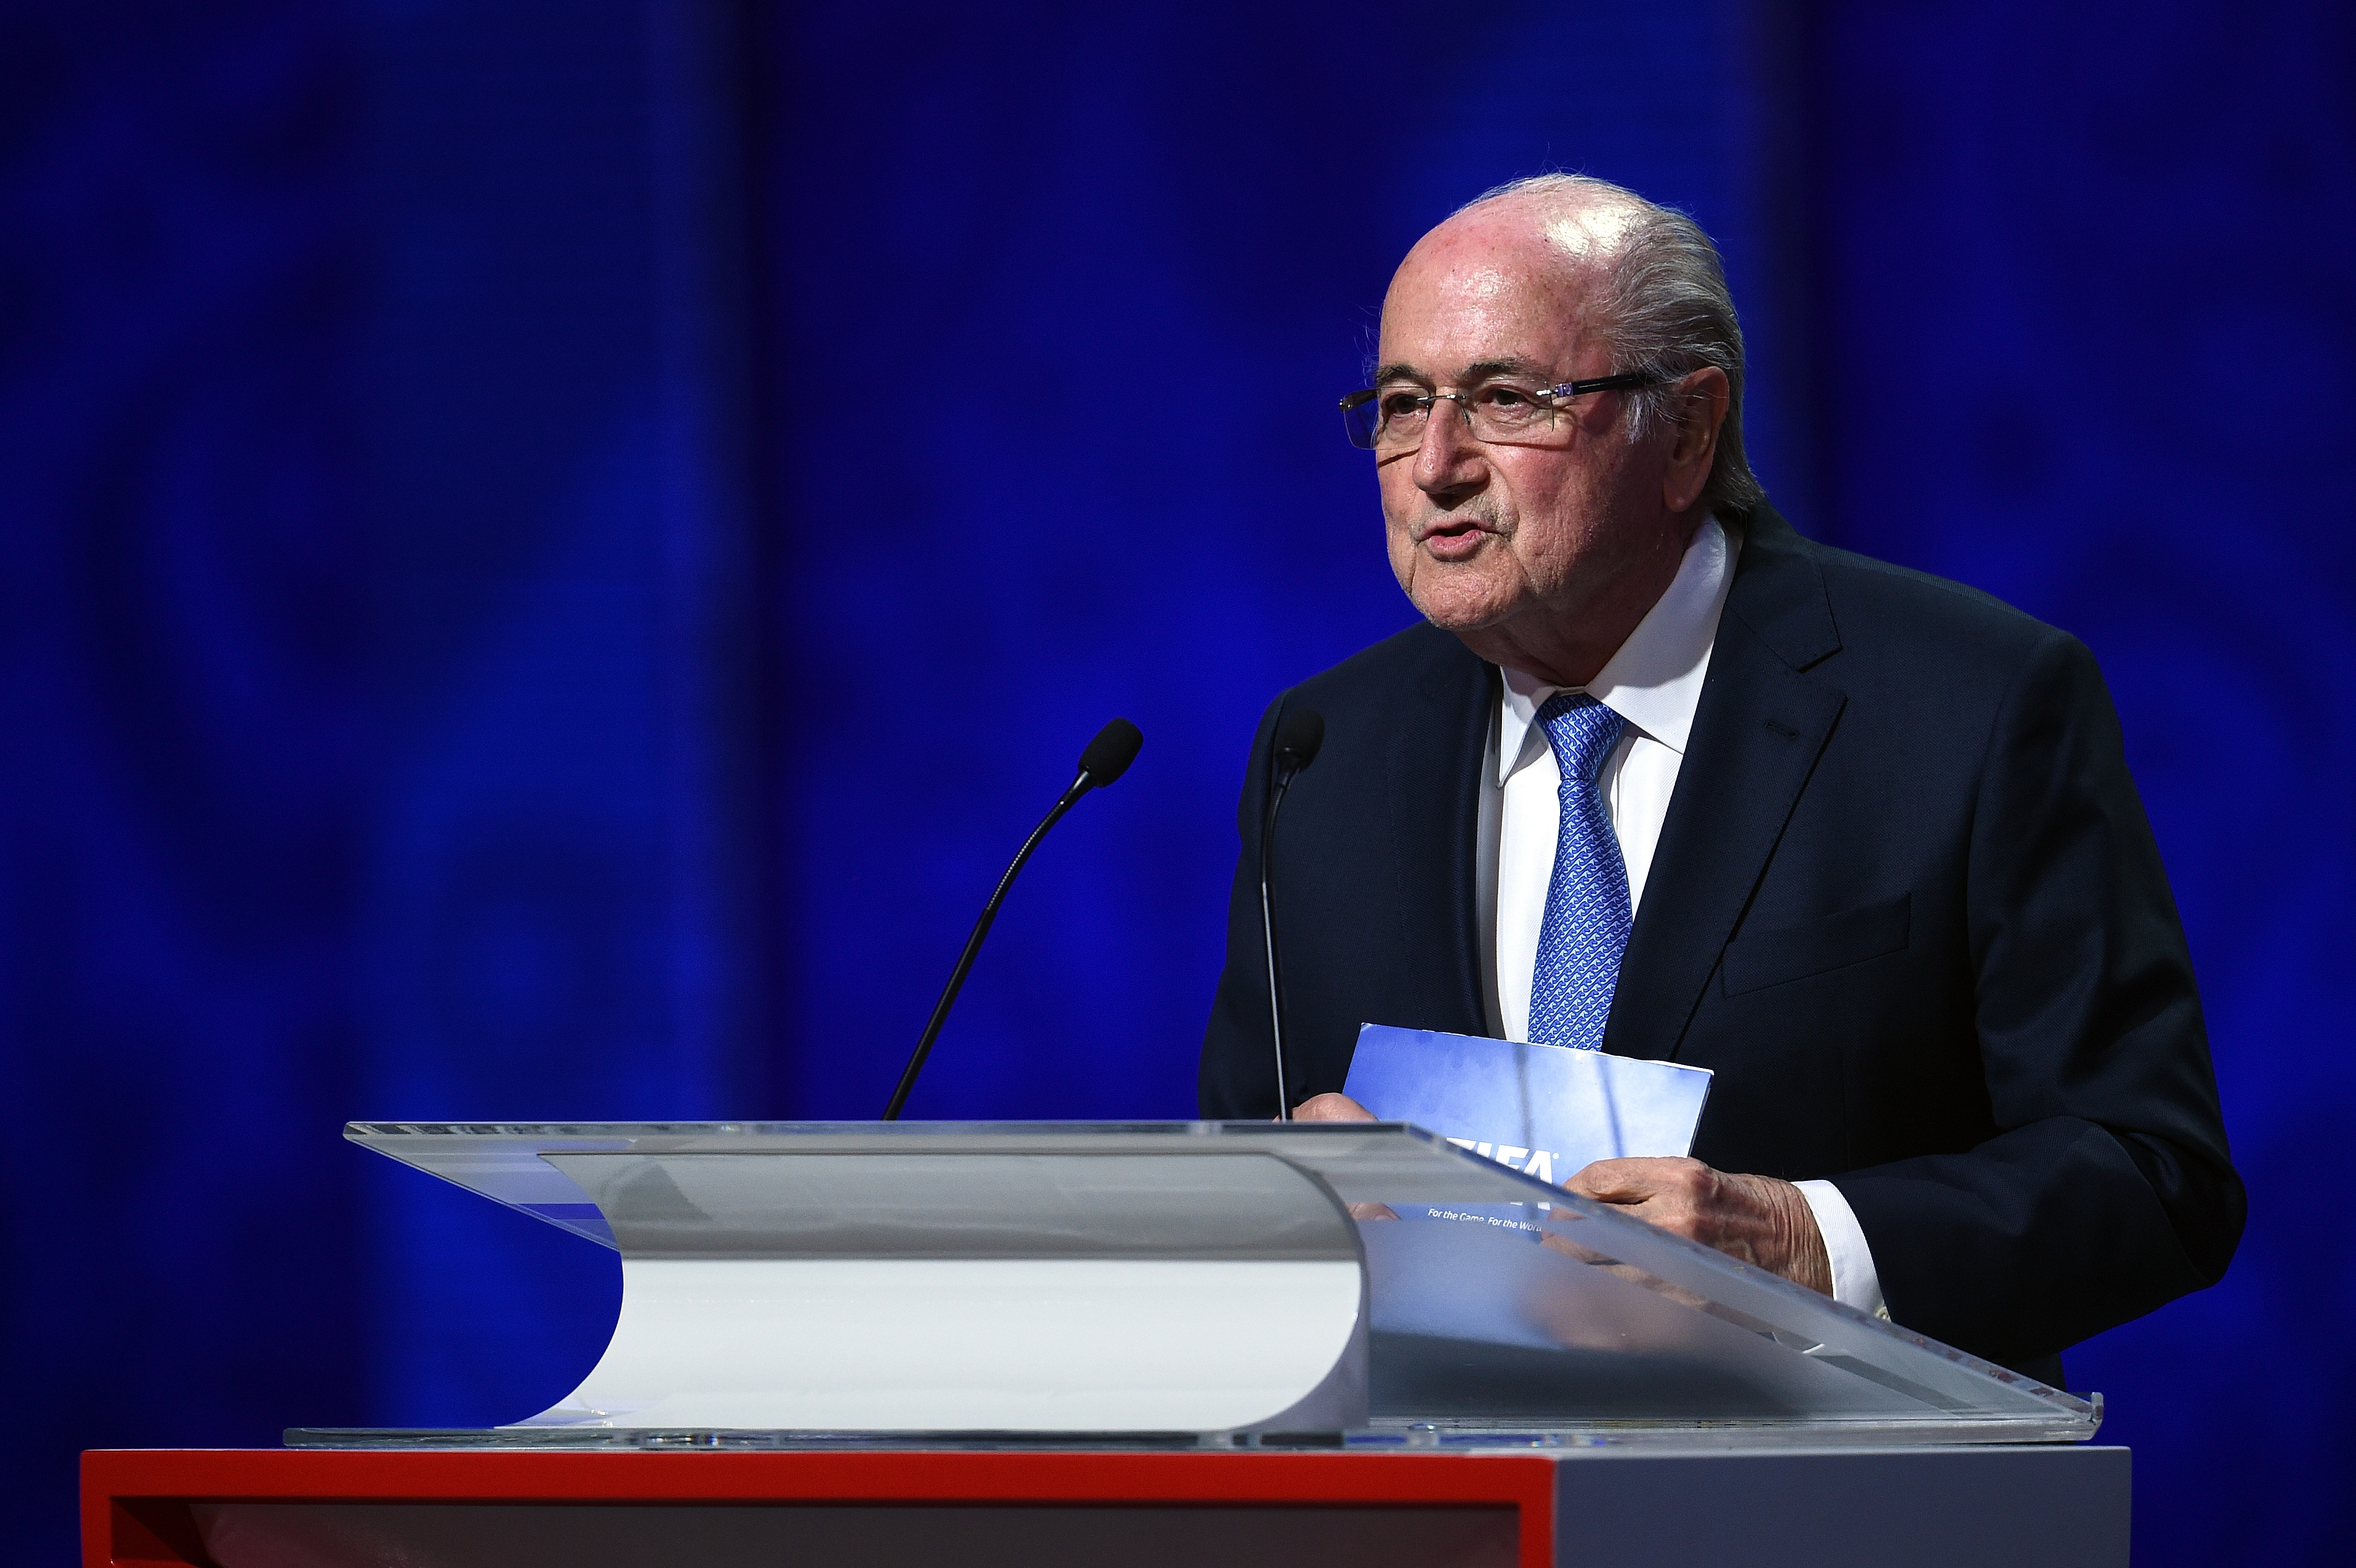 FIFA president Sepp Blatter speaks during the preliminary draw of the 2018 FIFA World Cup in Russia at the Konstantin Palace in St. Petersburg on July 25, 2015